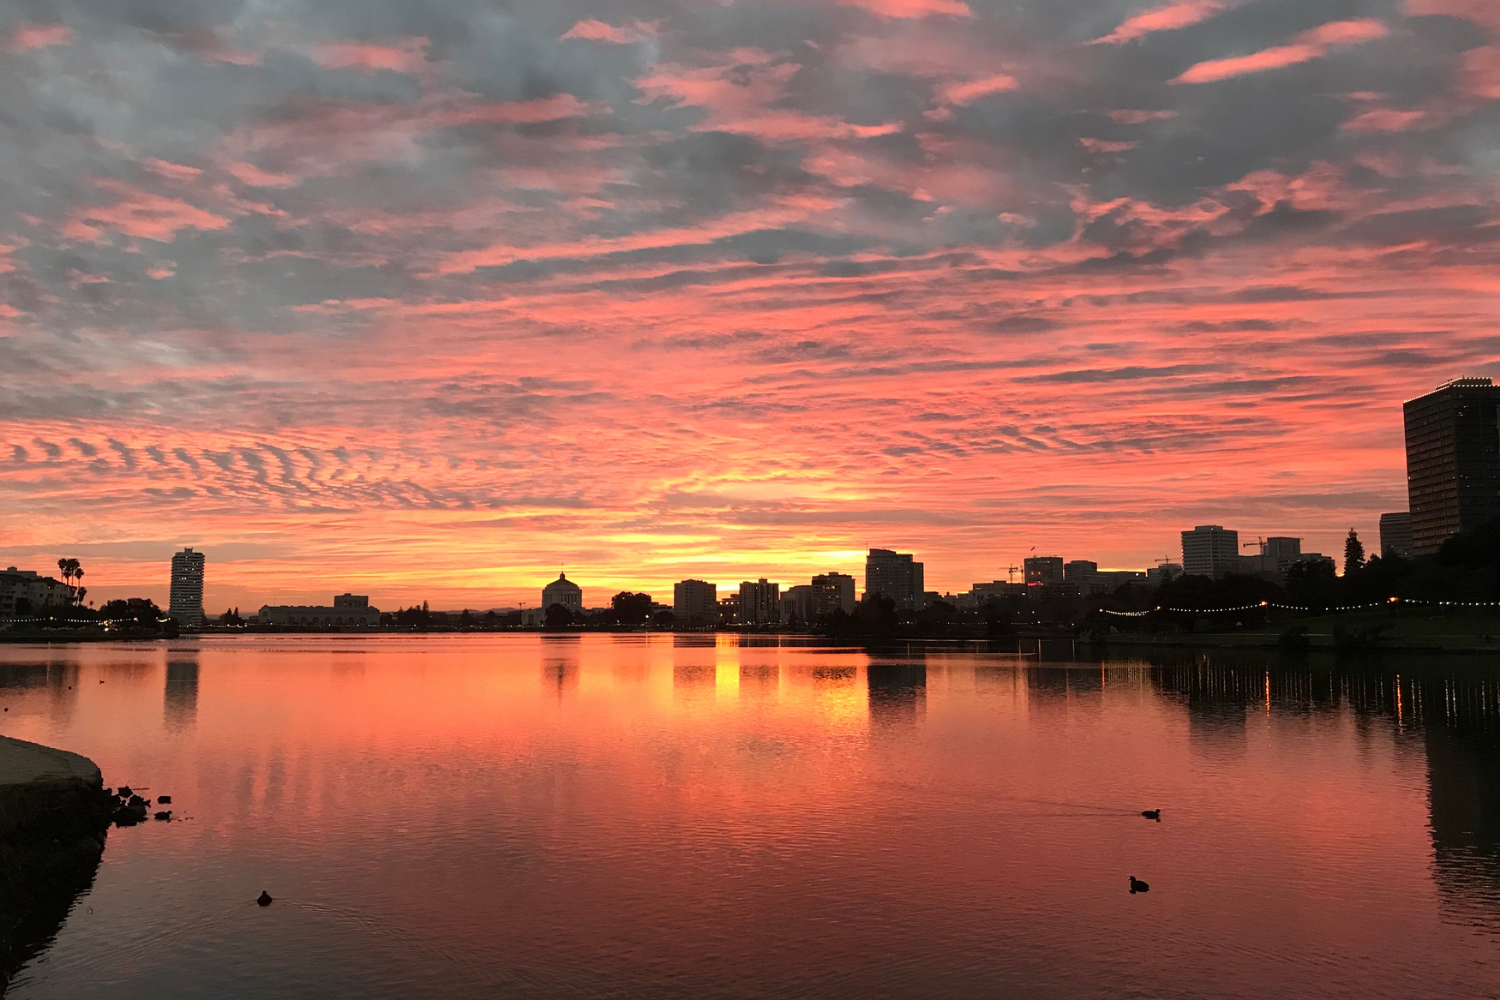 An extreme colorful sunset over Lake Merritt in Oakland, California